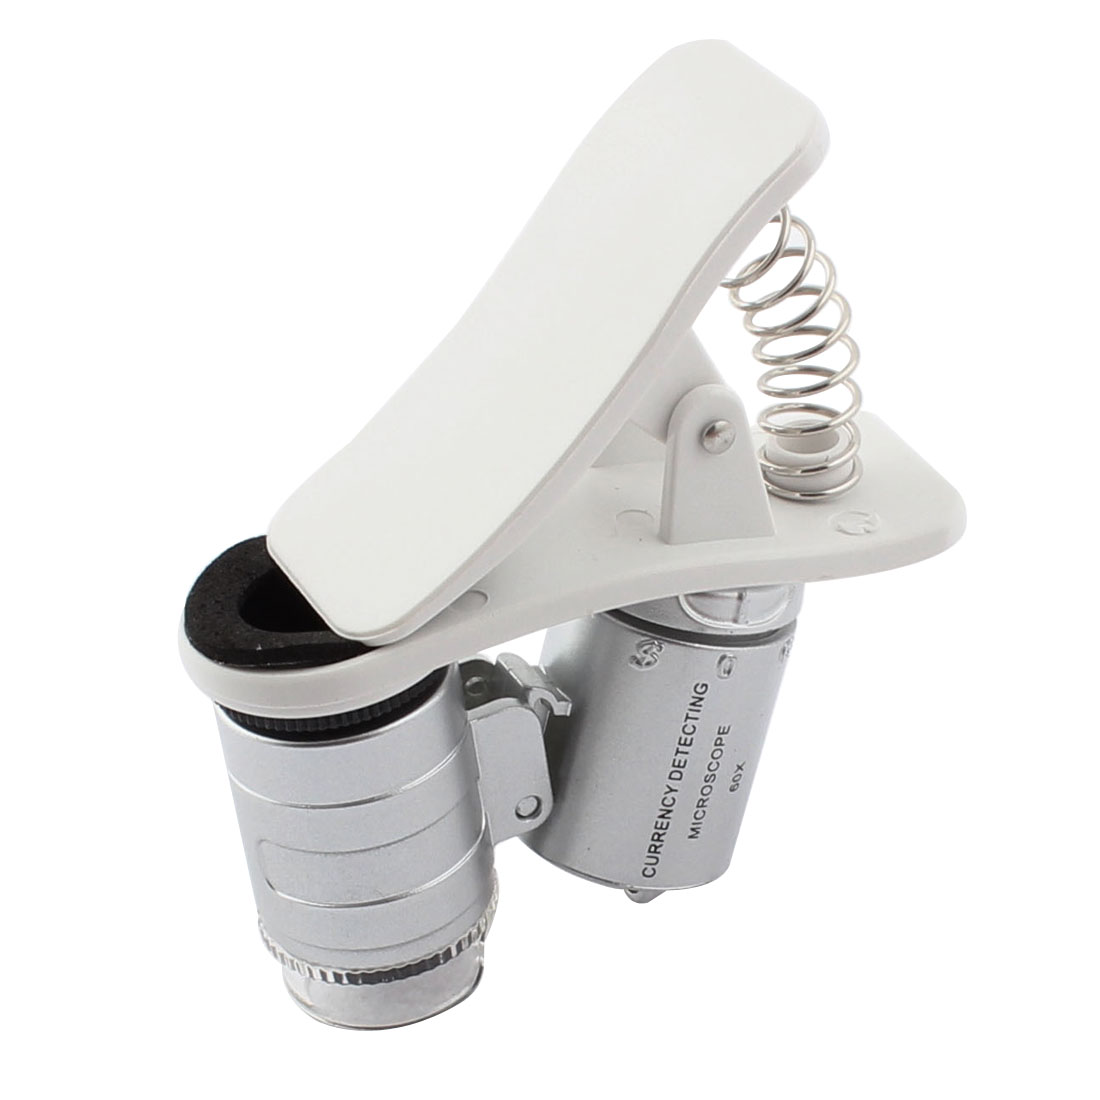 Pocket 3 LED Light Clip Fixed Microscope 60X Magnifier Loupe Glass